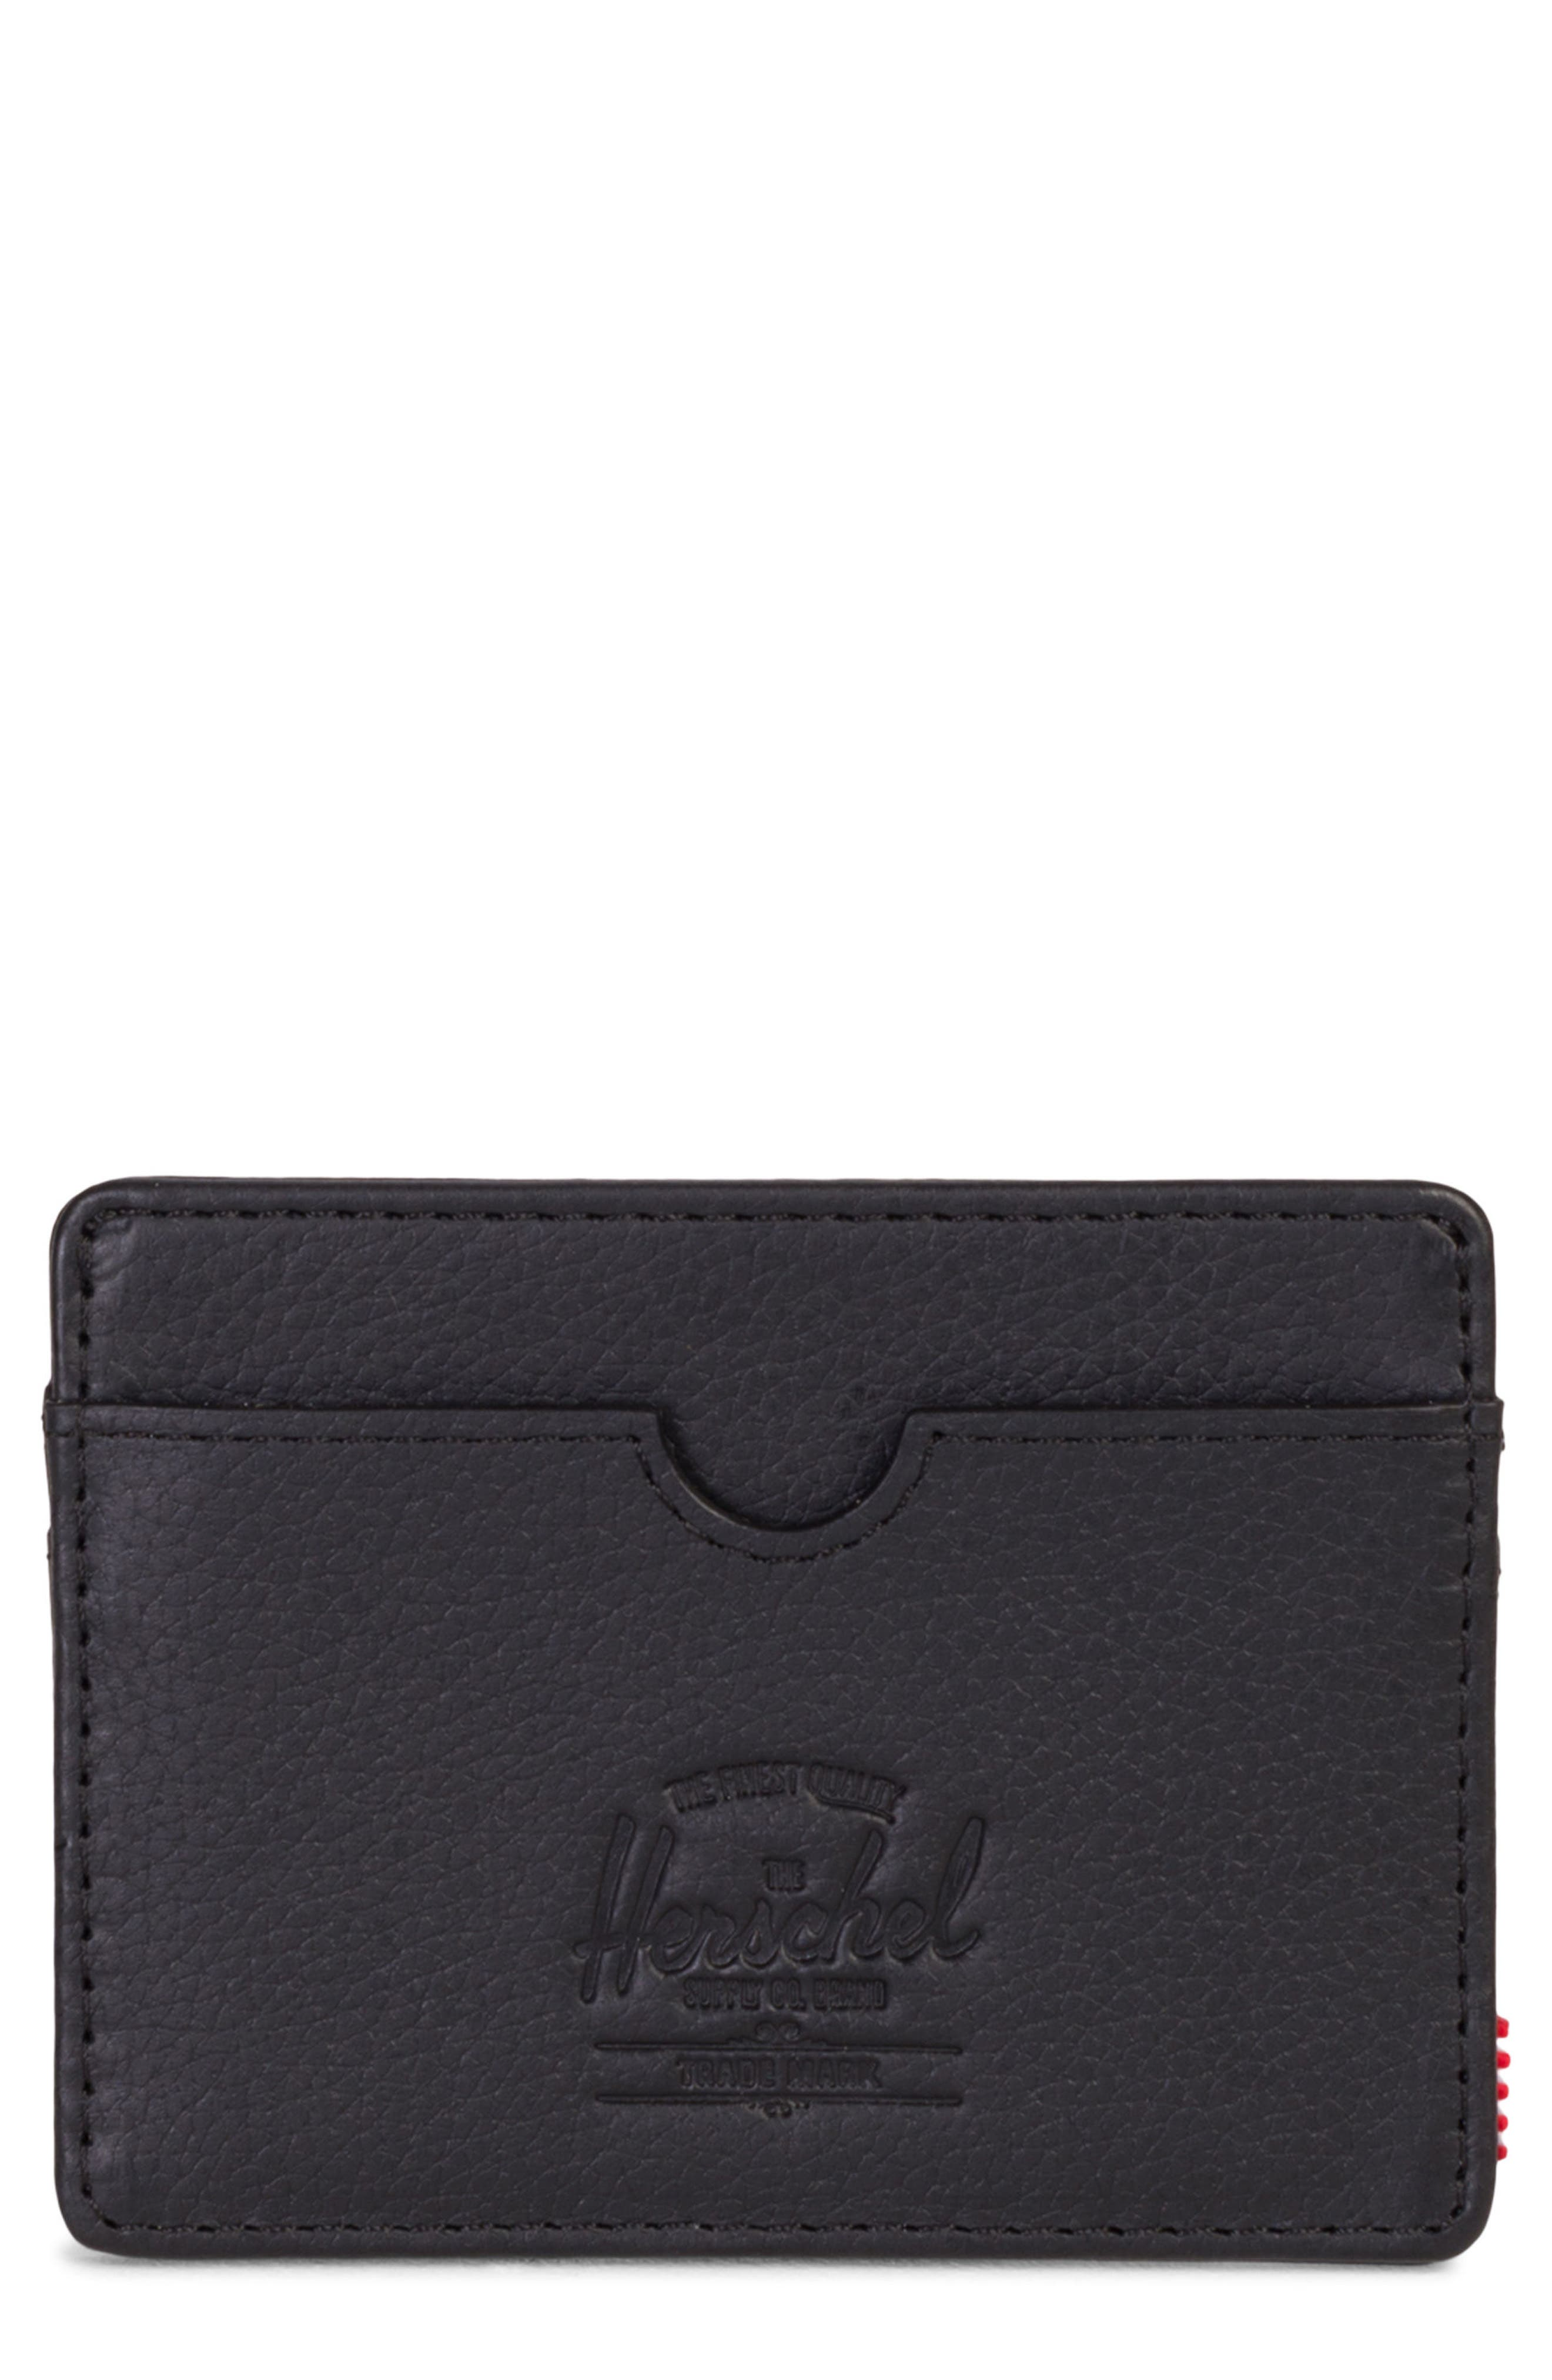 Charlie Leather Card Case,                             Main thumbnail 1, color,                             Black Pebbled Leather